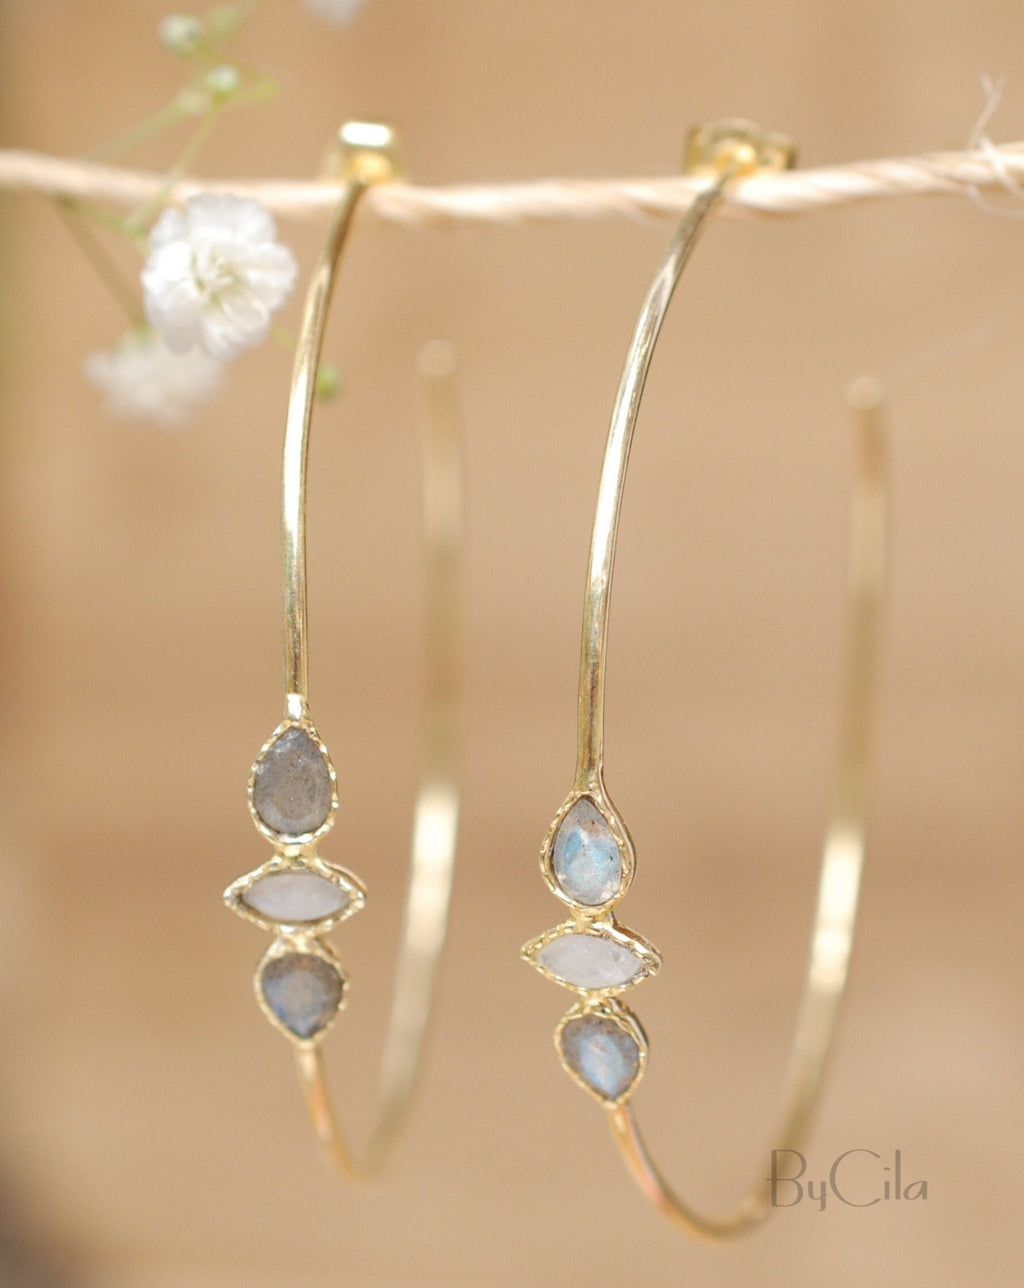 Labradorite & Moonstone Hoop Gold or Silver Earrings * Gemstone * Stud* Post* Labradorite *Handmade * Boho * Modern * ByCila * Loop* BJE016A